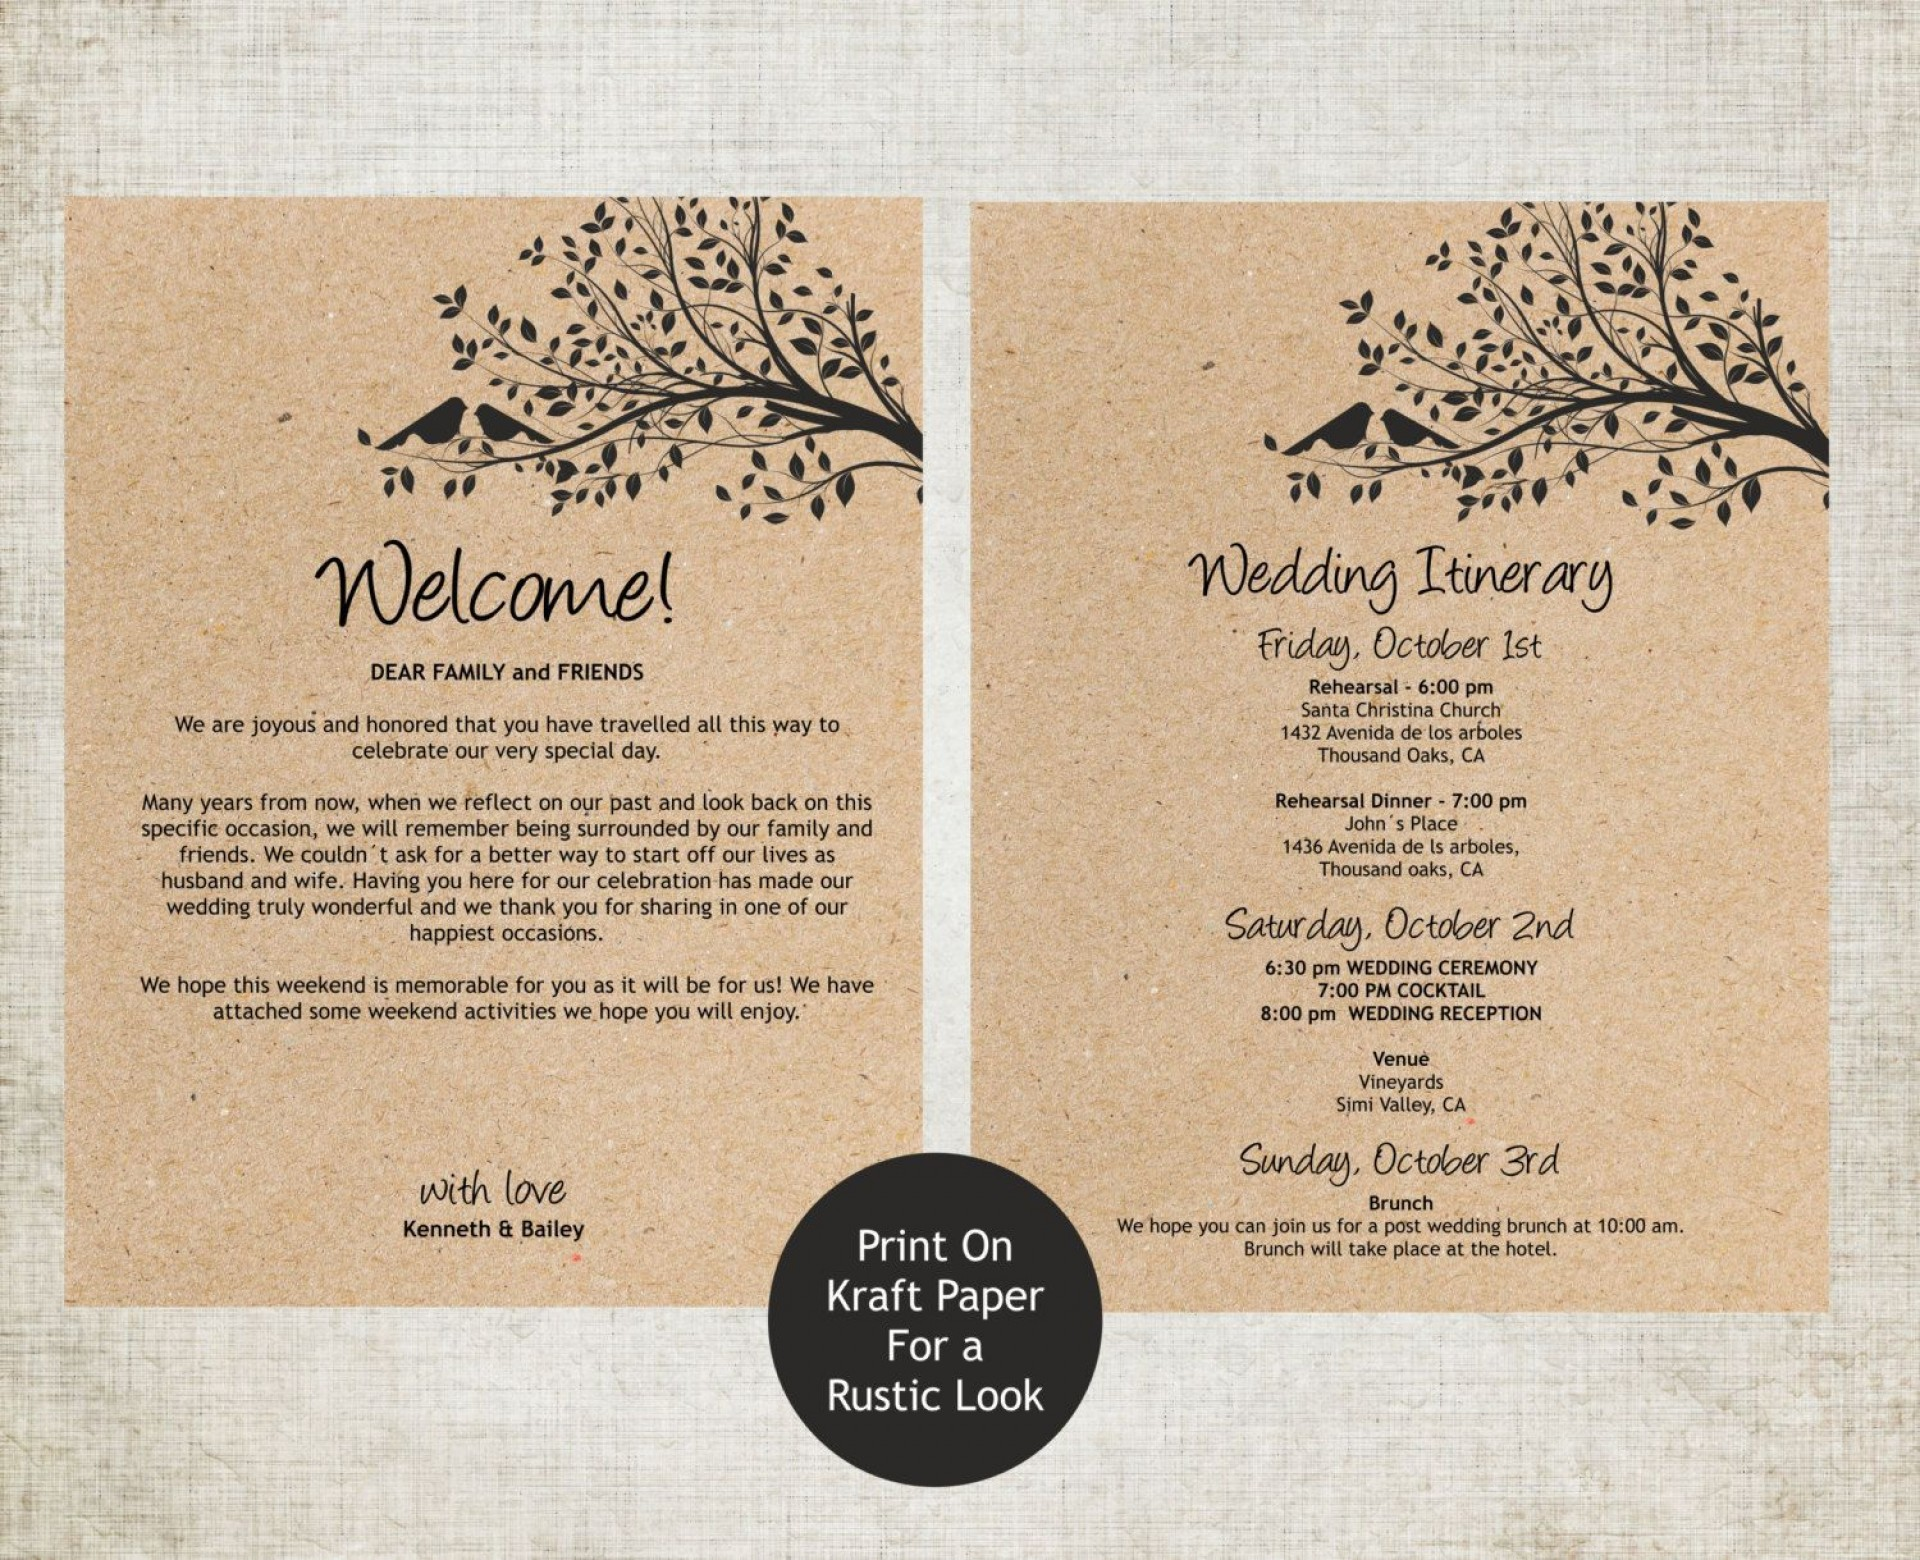 004 Rare Destination Wedding Welcome Letter Template Concept  And Itinerary1920